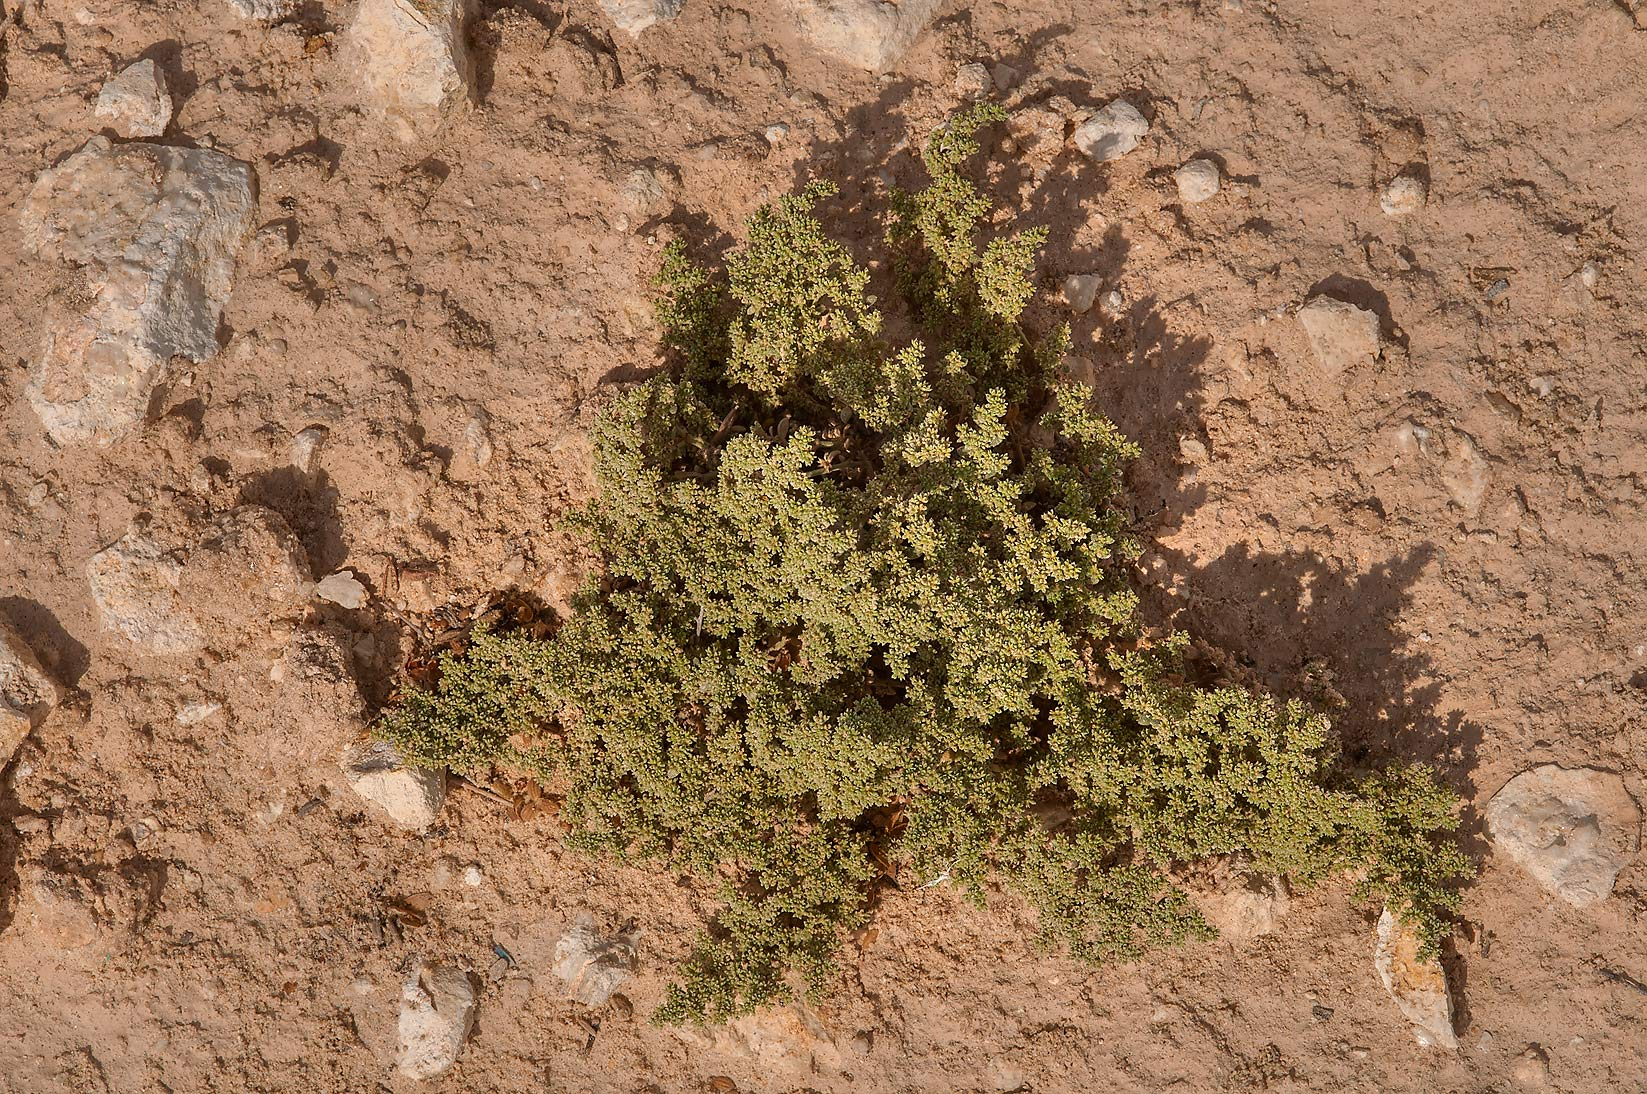 Desert plant Herniaria hemistemon (local name...of Ras Laffan, north from Doha. Qatar